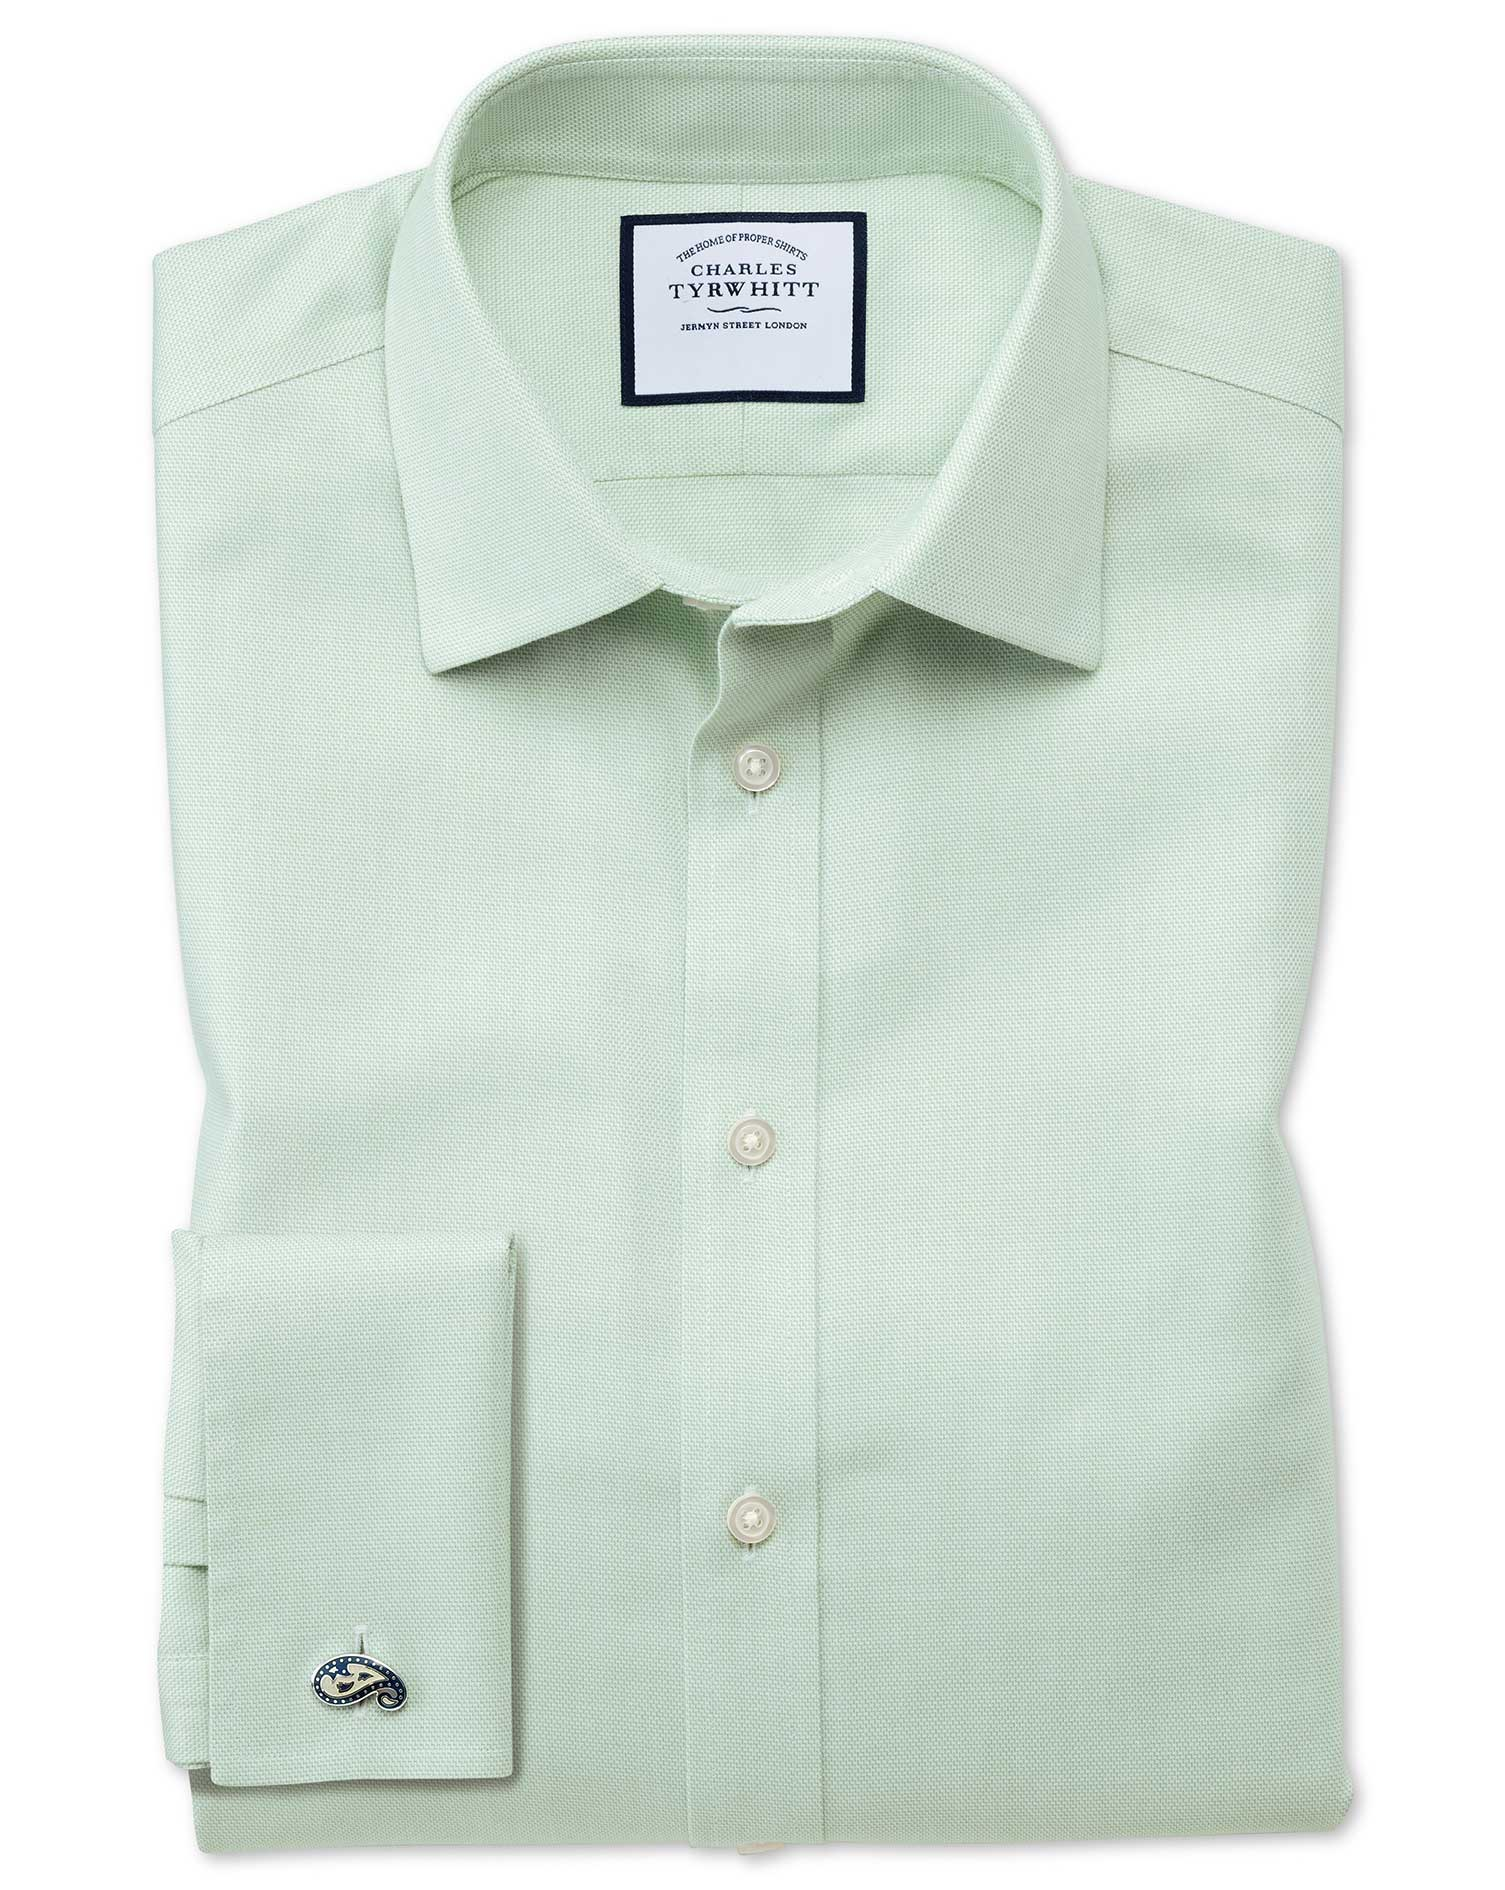 Slim Fit Non-Iron Step Weave Green Cotton Formal Shirt Single Cuff Size 17.5/36 by Charles Tyrwhitt